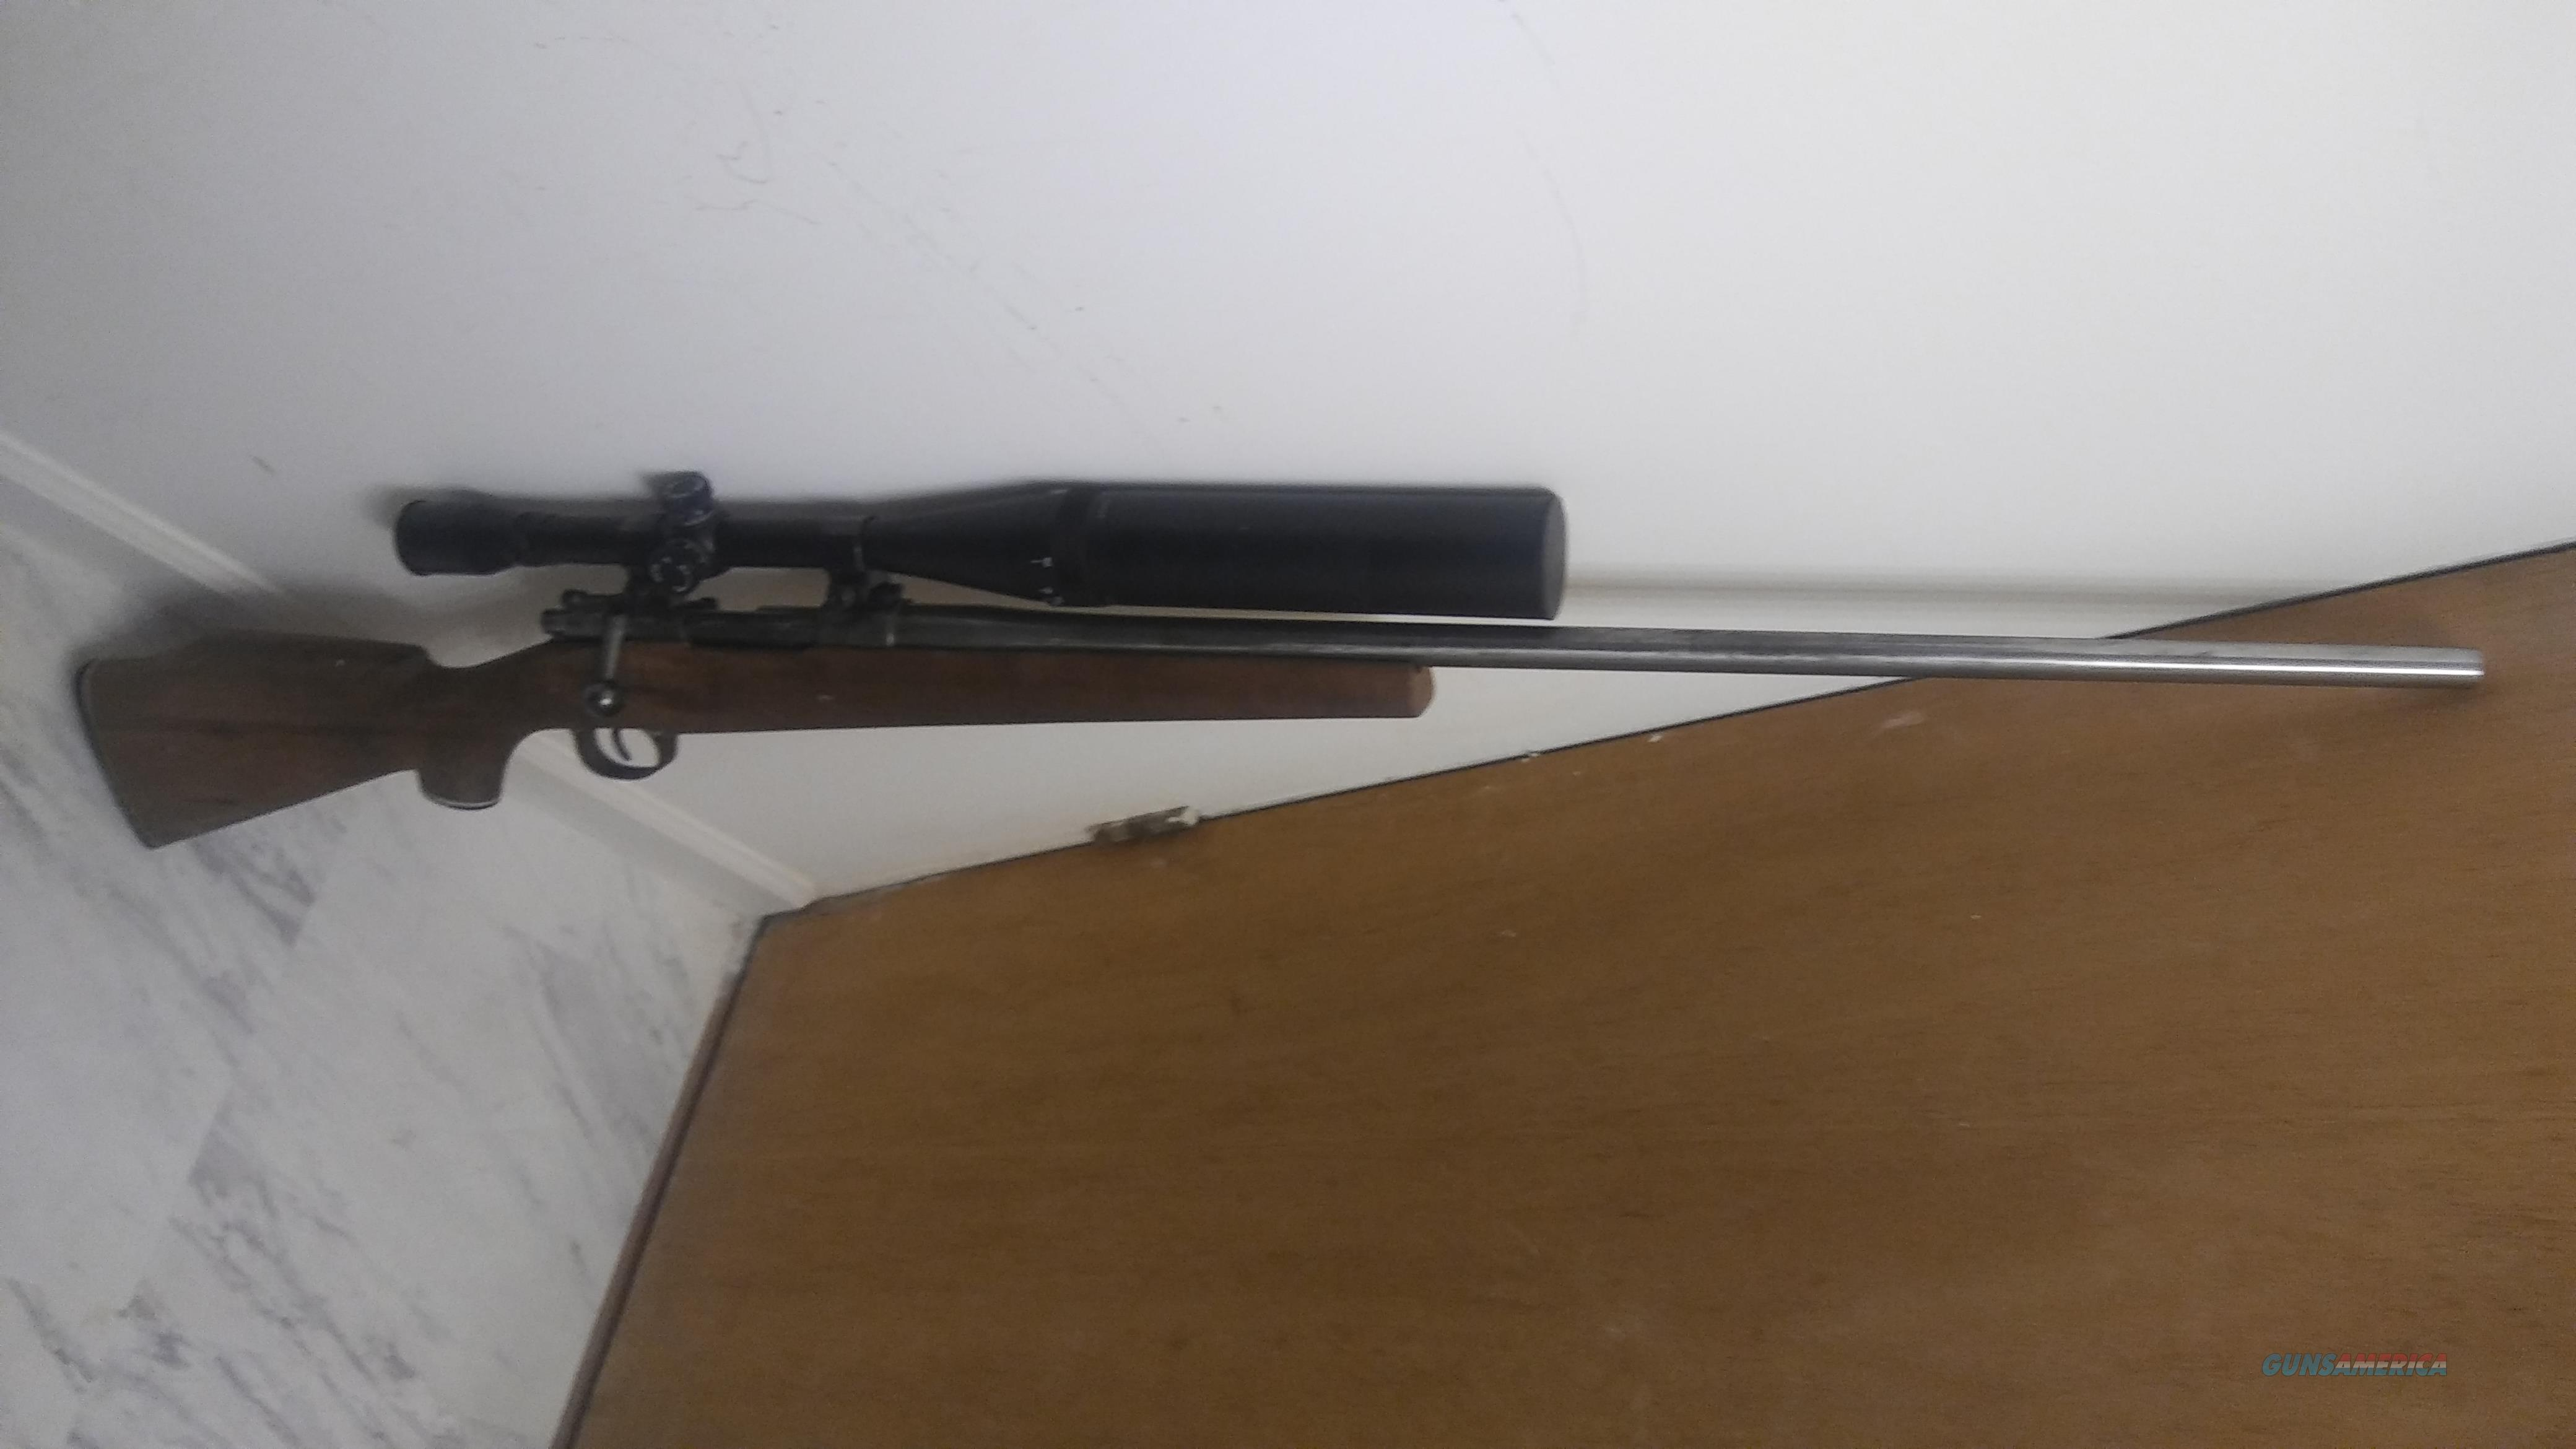 Bolt Action Rifle .223/556  Guns > Rifles > Custom Rifles > Bolt Action